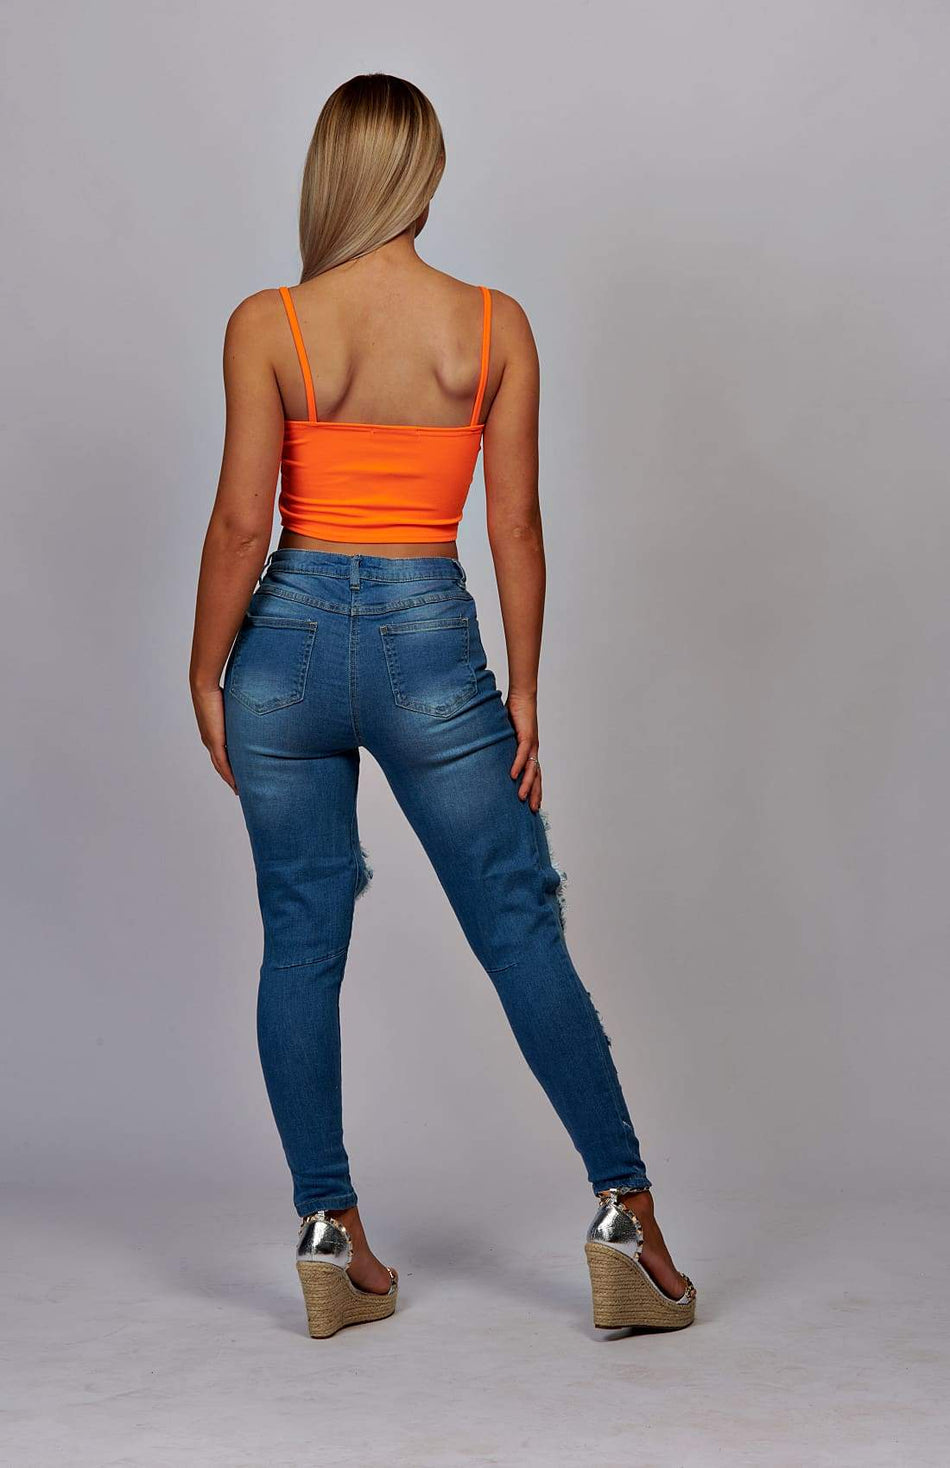 Neon Orange Bandeau Strap Crop Top